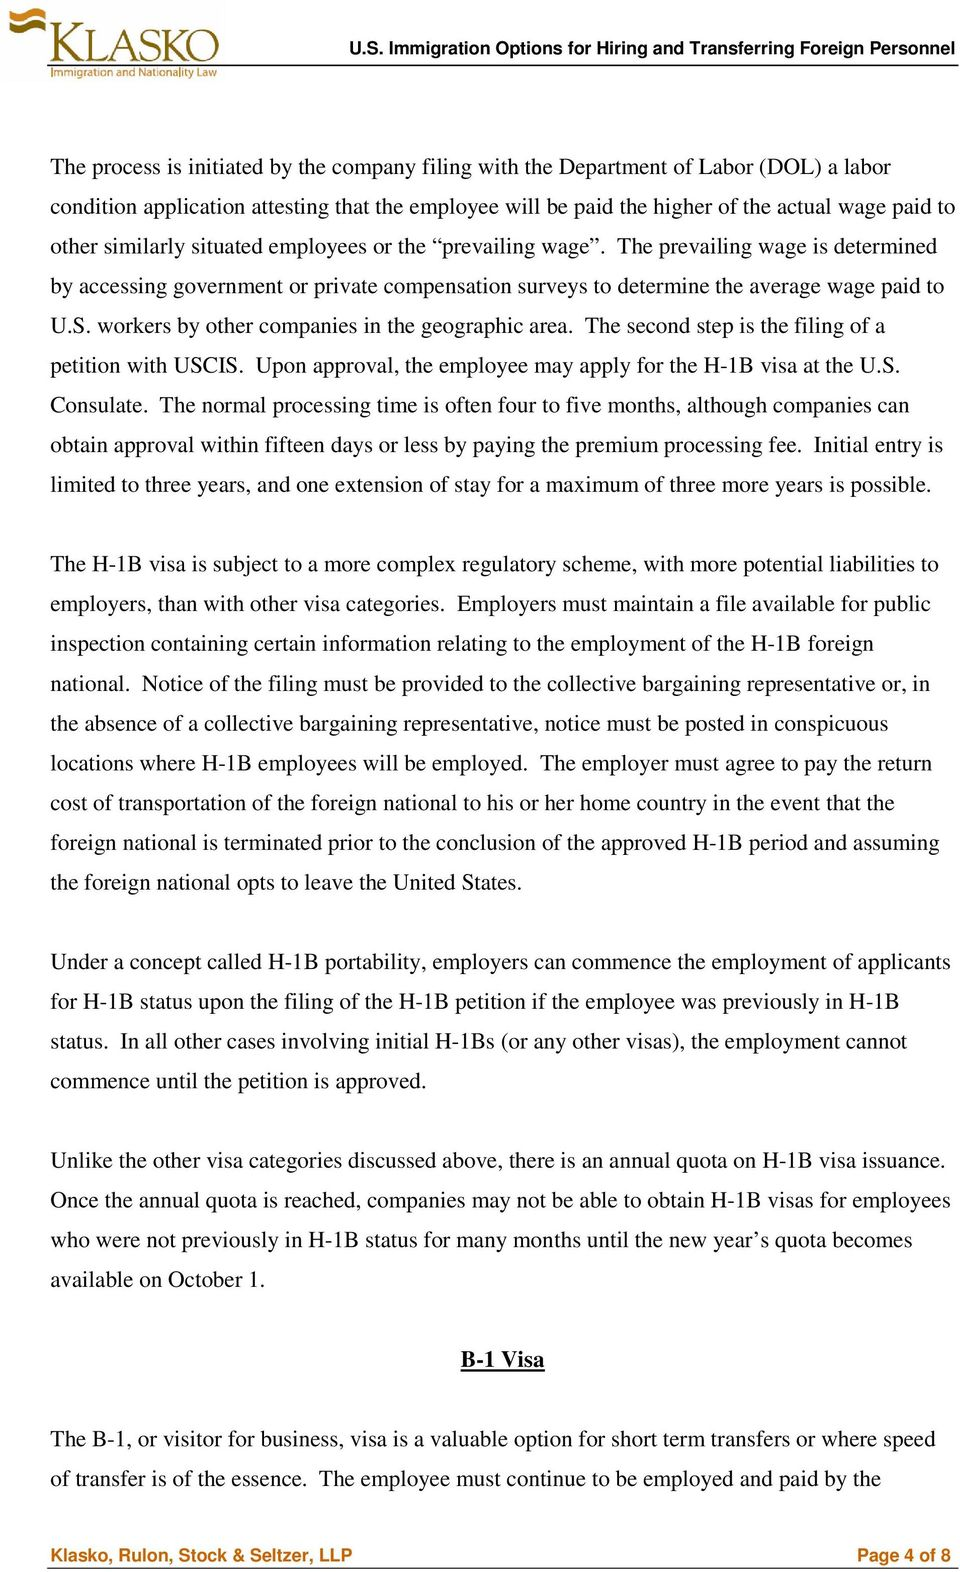 workers by other companies in the geographic area. The second step is the filing of a petition with USCIS. Upon approval, the employee may apply for the H-1B visa at the U.S. Consulate.